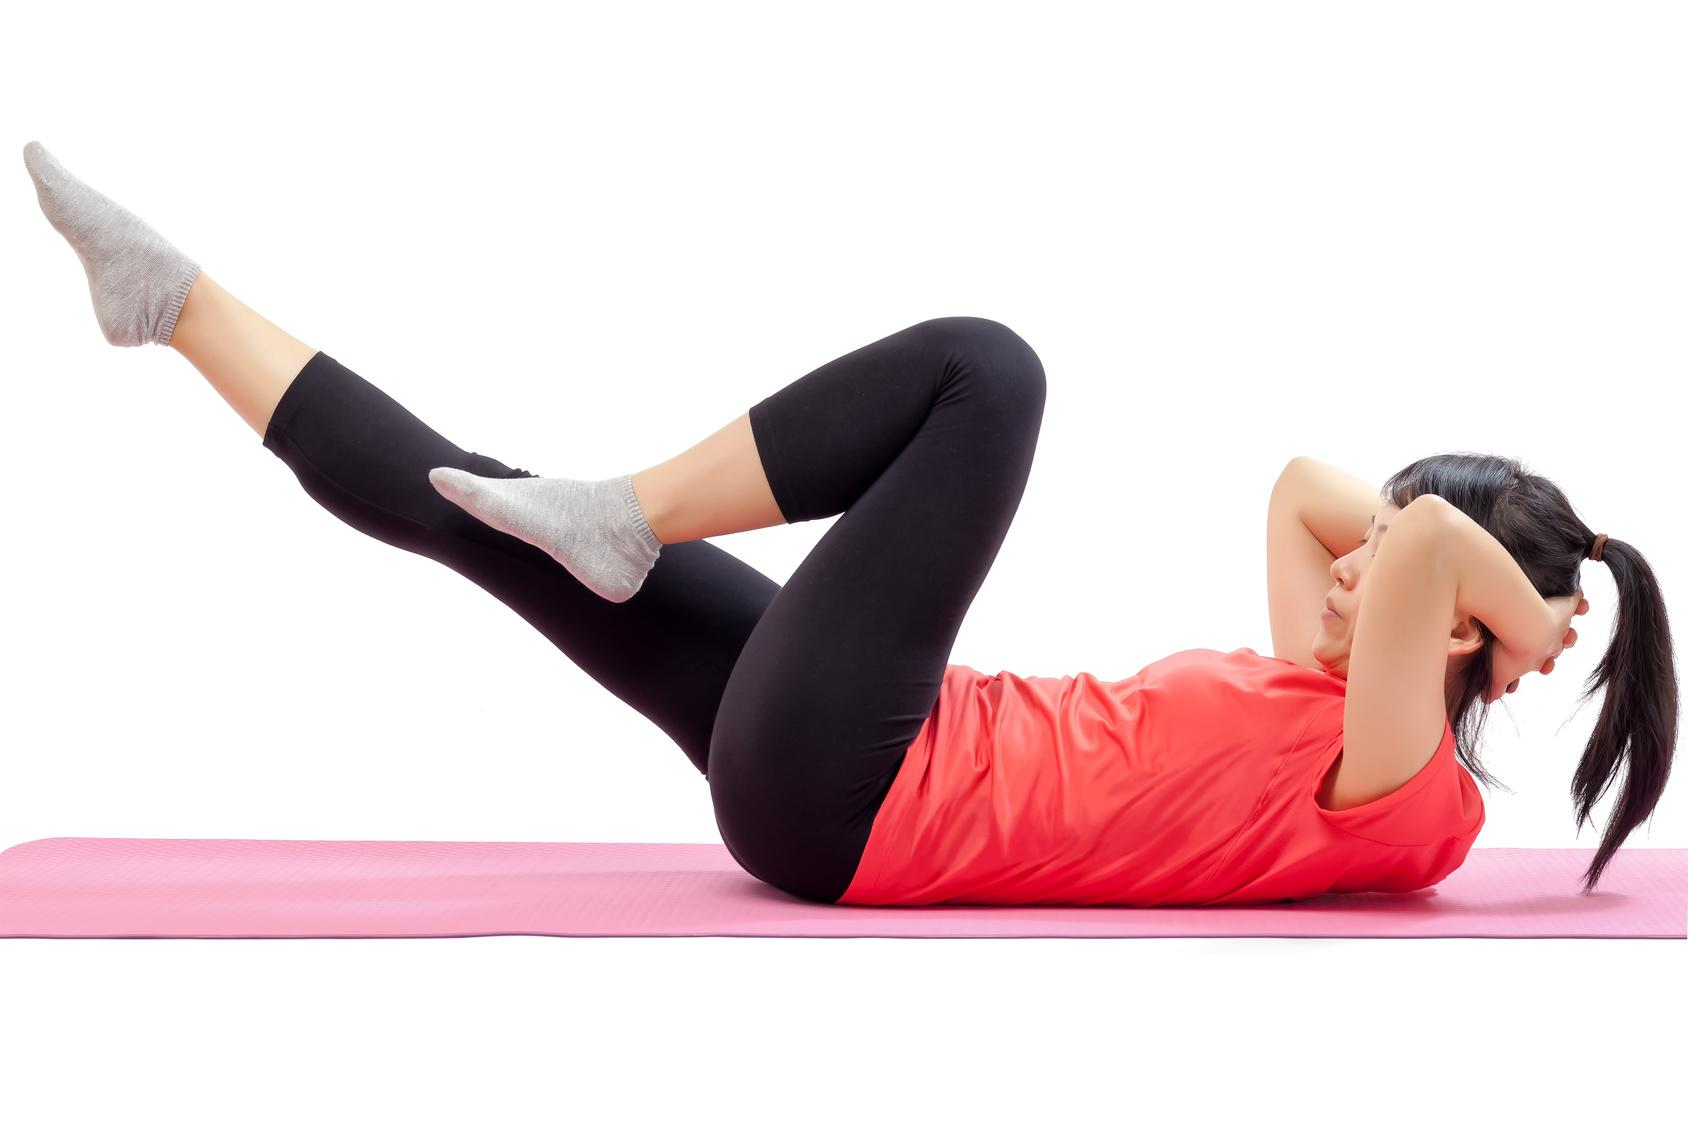 Woman doing abdominal exercises isolated on white background